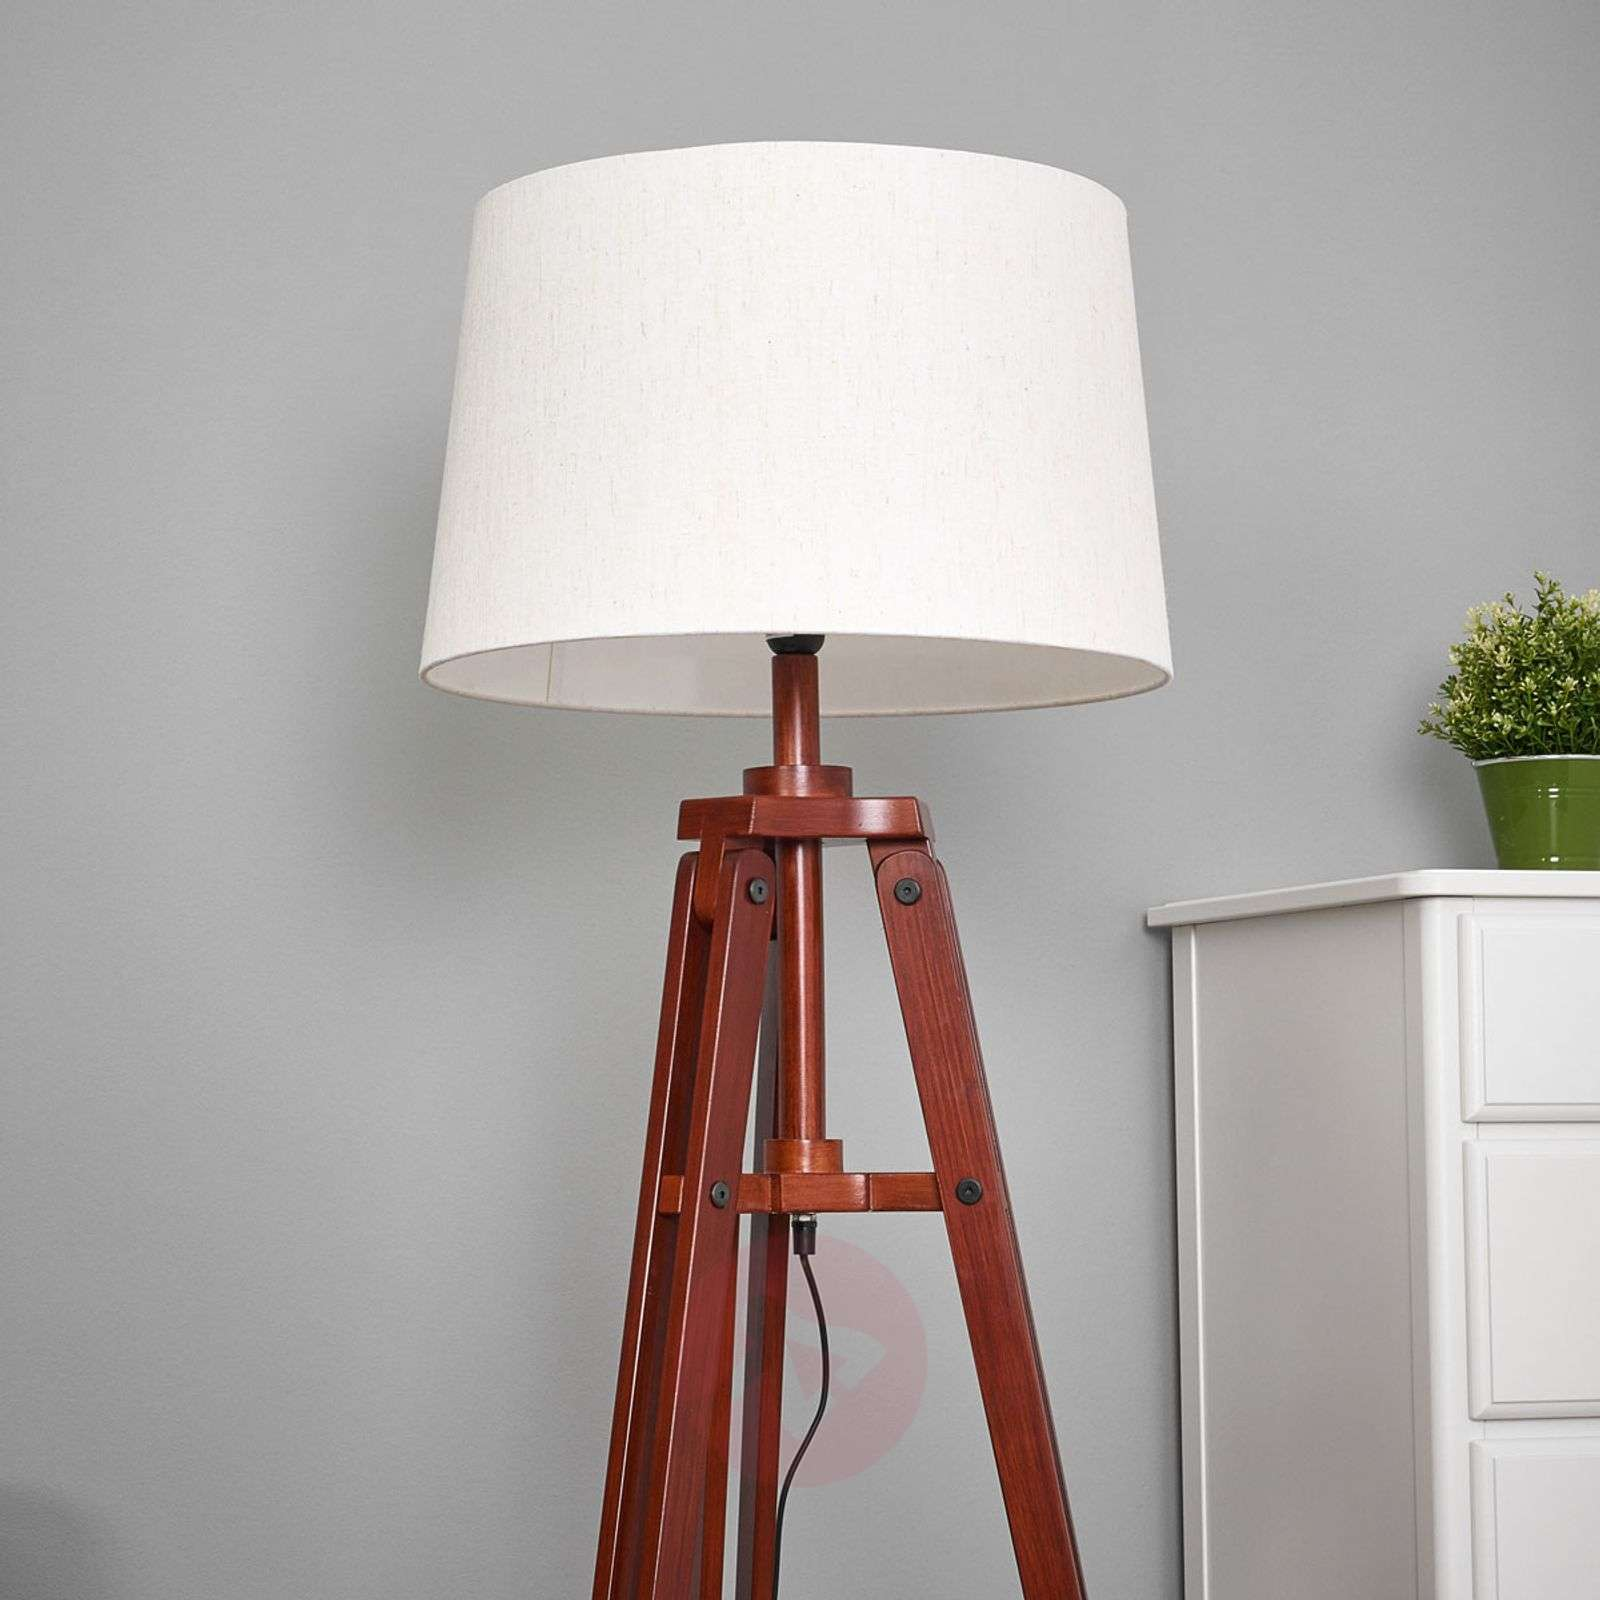 Tripod floor lamp Marvin in wood, height 158 cm-8553066-01